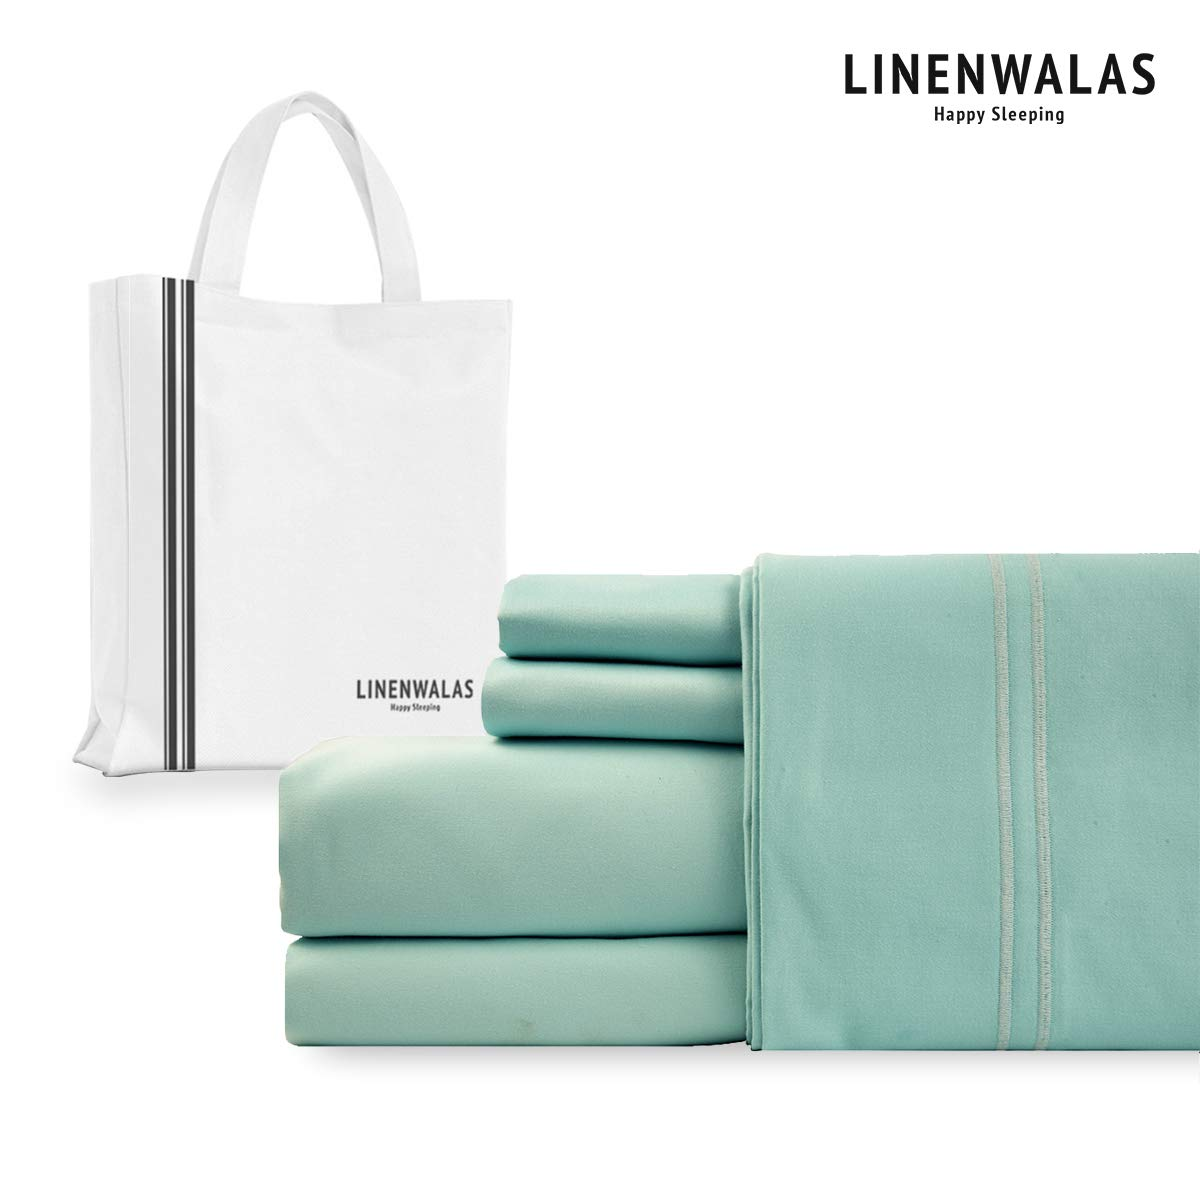 LINENWALAS 1000 Thread-Count 100% Cotton Hotel Luxury Bed Sheets - 4Pc Sheet Set - Extra Soft - Deep Pockets - Easy Fit - Breathable & Cooling Sheets -Wrinkle Free - Turquoise Bed Sheets - King Sheet